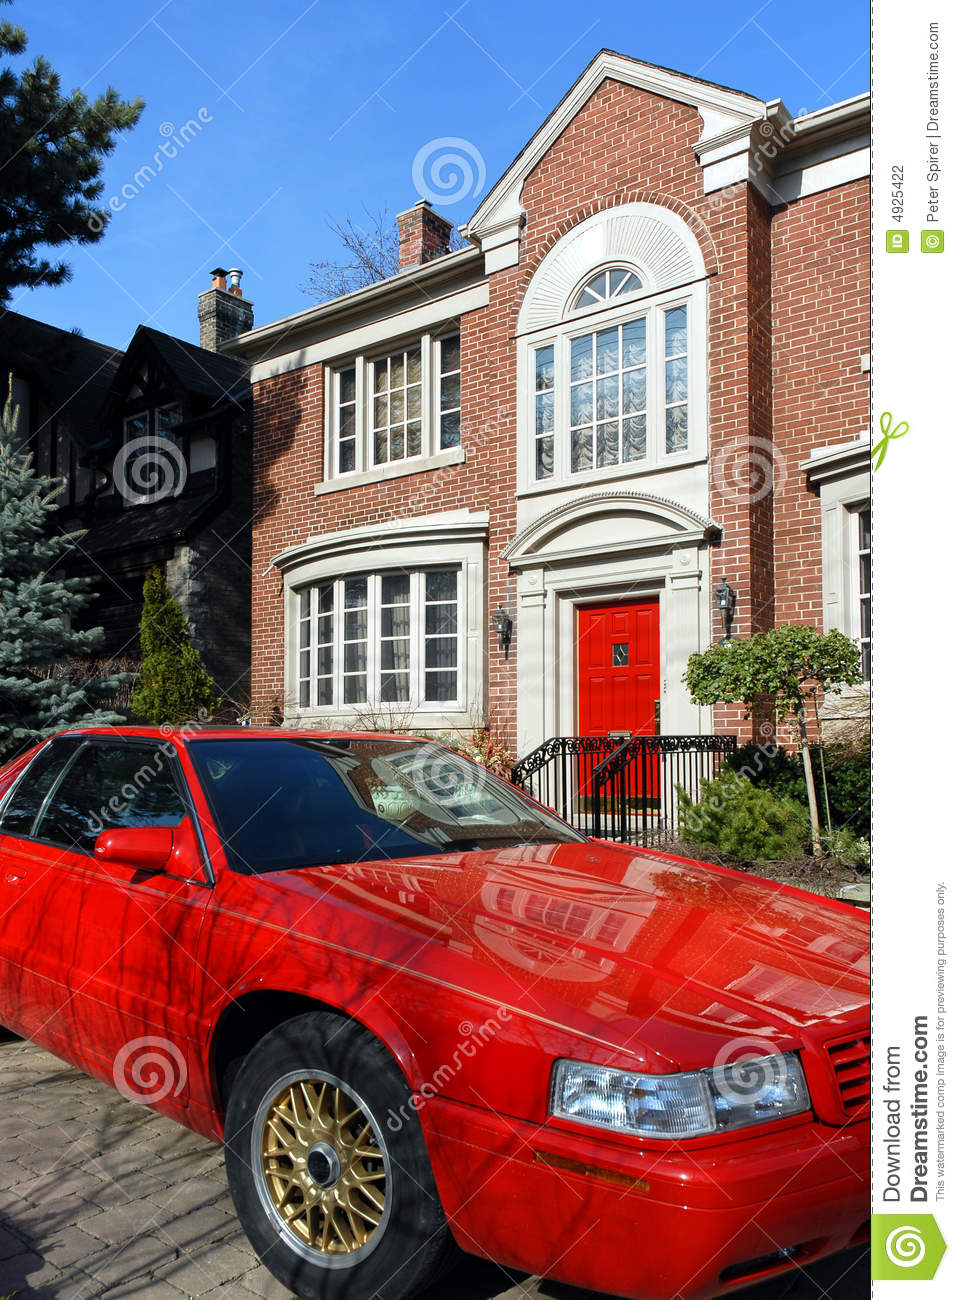 red car parked in front of house stock photography image